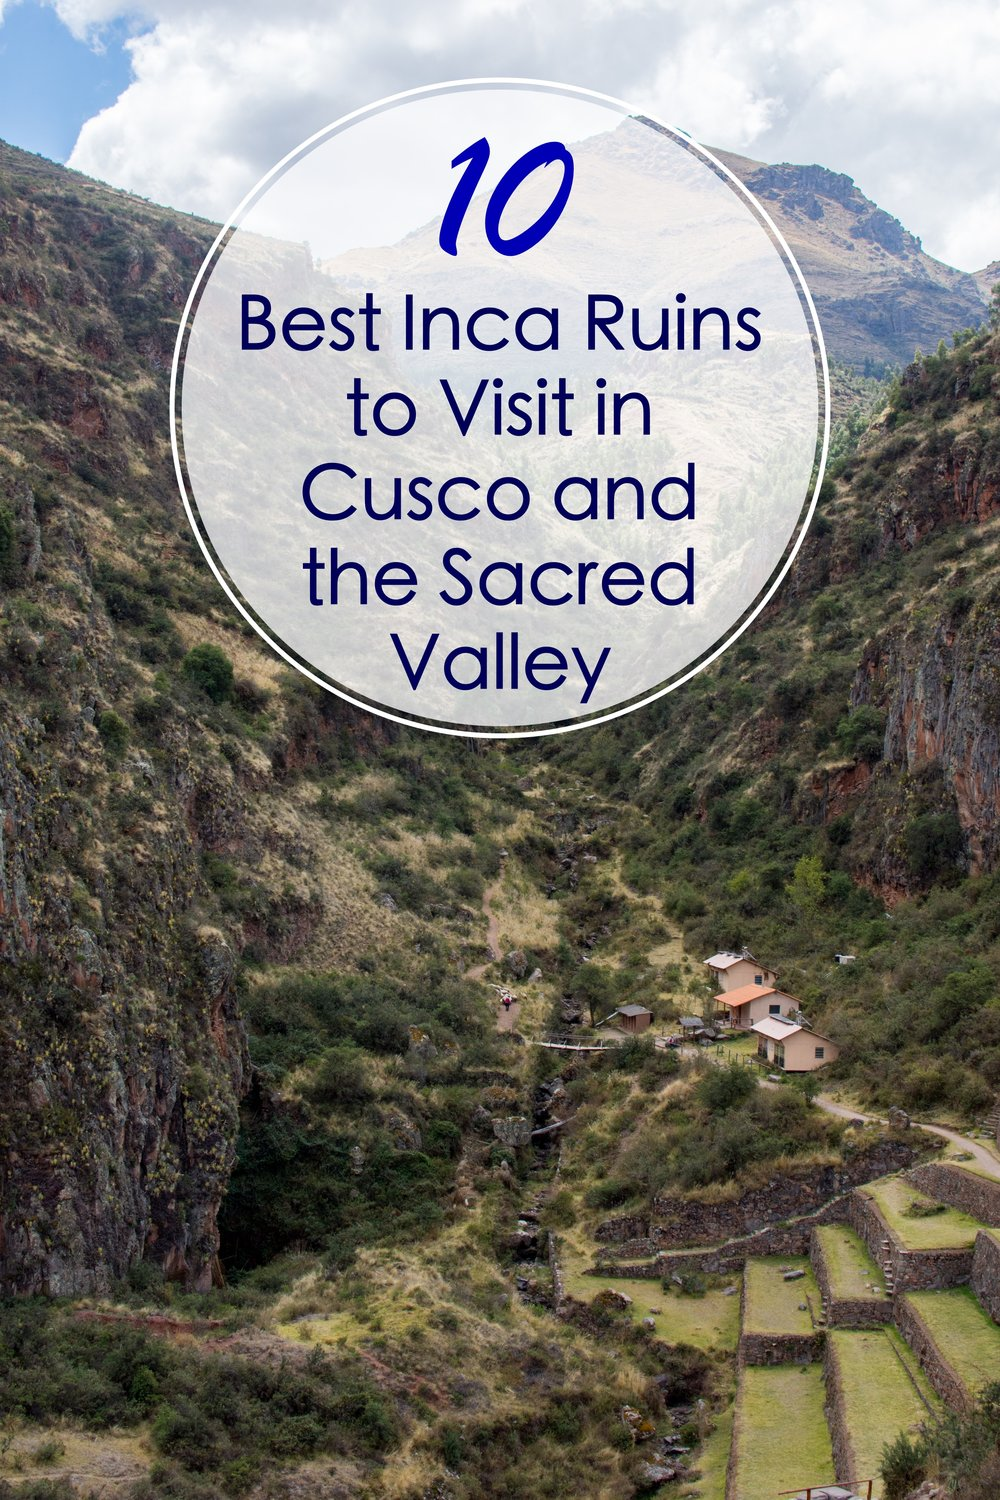 The 10 Best Inca Ruins to Visit in Cusco and the Sacred Valley, Peru.  The former capital of the Inca Empire is full of many Inca sites in addition to Machu Picchu. #Peru #SacredValley #Inca